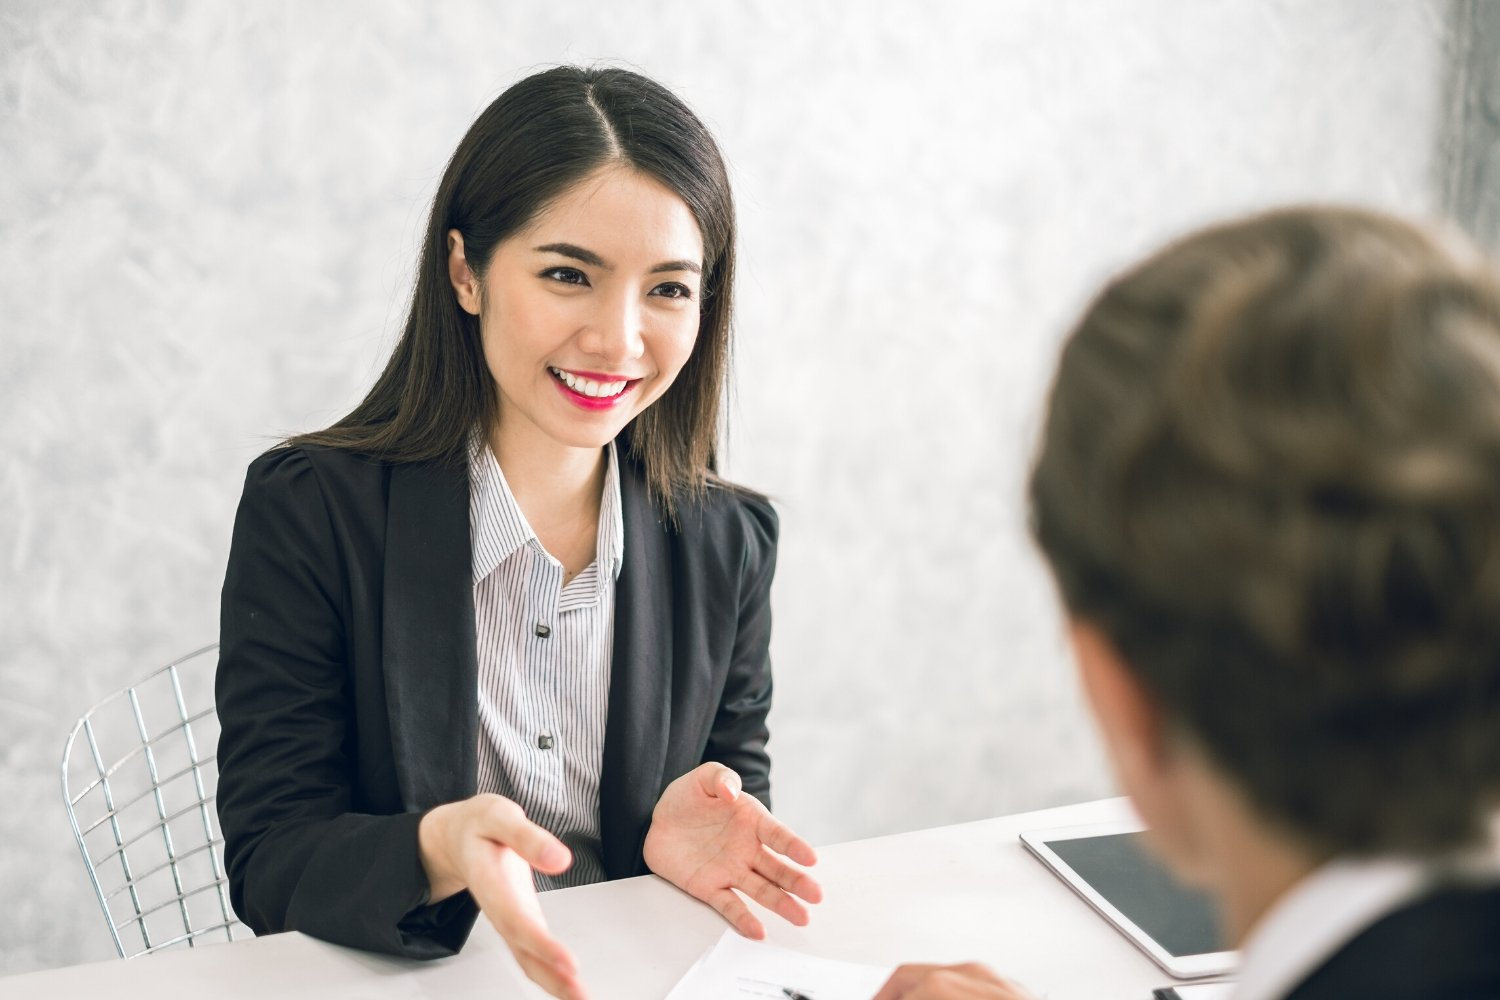 How to Ask for Feedback After Interview